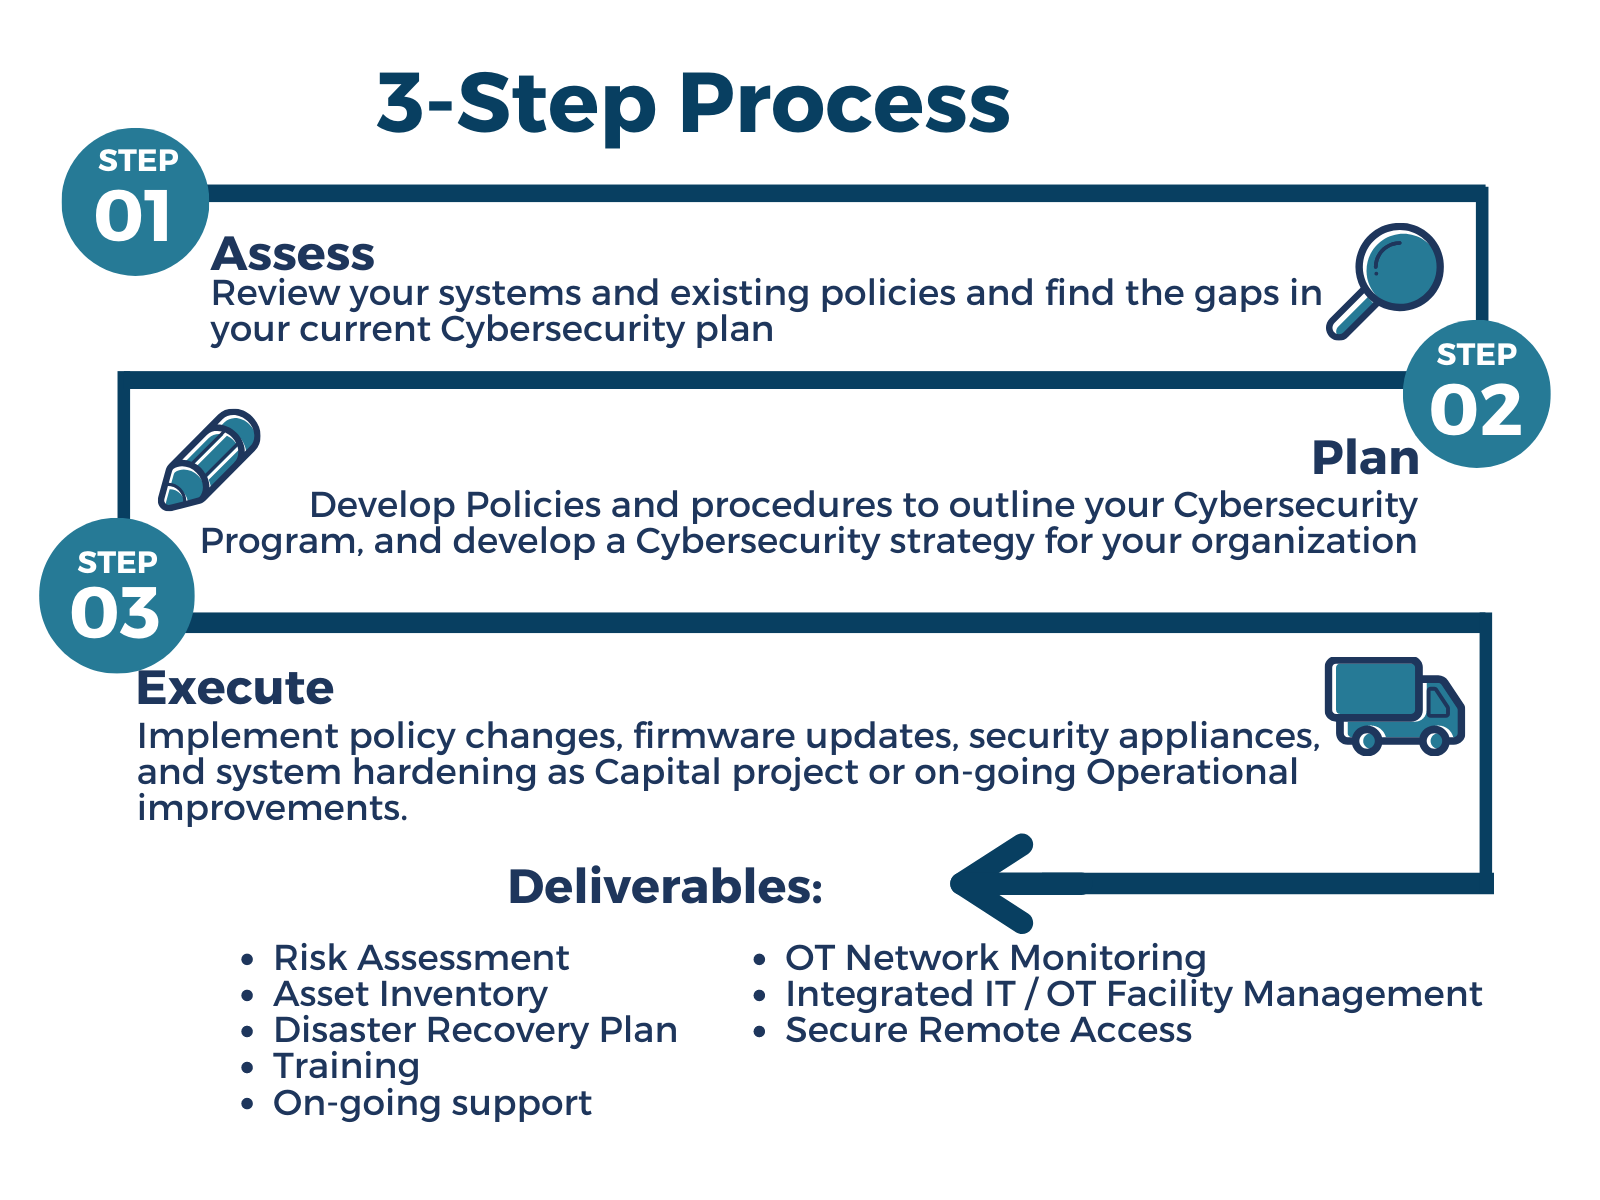 Convergence 3 Step Cybersecurity Process. 1. Assess. Review your systems and existing policies and find the gaps in your current Cybersecurity plan 2. Plan Develop Policies and procedures to outline your Cybersecurity Program, and develop a Cybersecurity strategy for your organization. 3 Excute Implement policy changes, firmware updates, security appliances, and system hardening as Capital project or on-going Operational improvements. Deliverables Risk assessment, asset inventory, disaster recovery plan, training, on-going support, OT Network Monitoring, Integrated IT /OT Facility Management, Secure remote access, 24/7 Incident Response